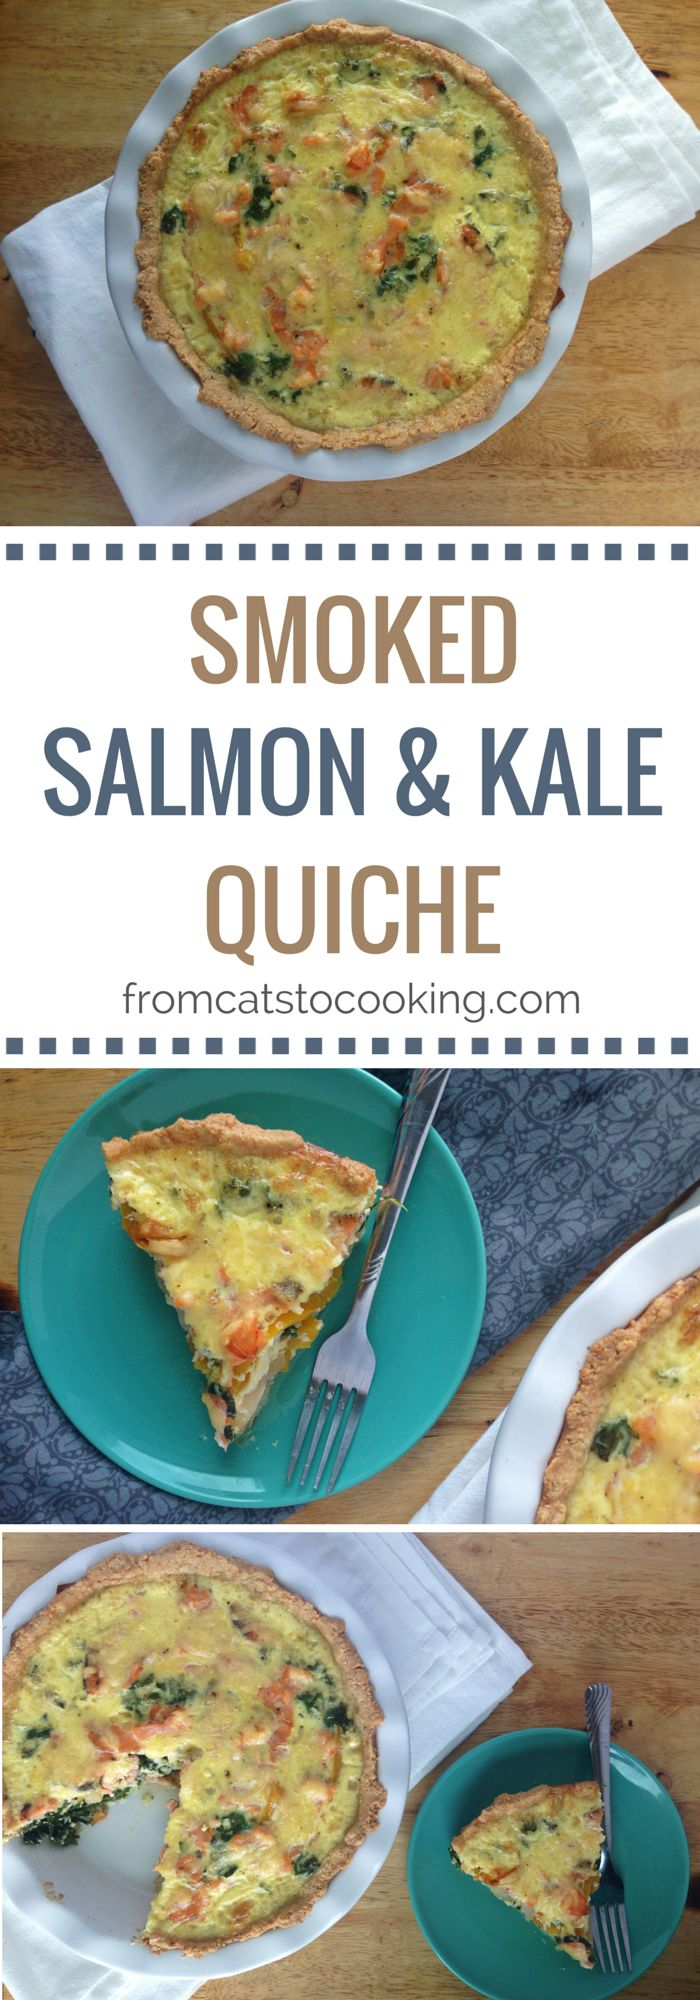 Blue apron quiche artichoke - Smoked Salmon And Kale Quiche Healthybreakfast Pinned For You By Https Organicaromas